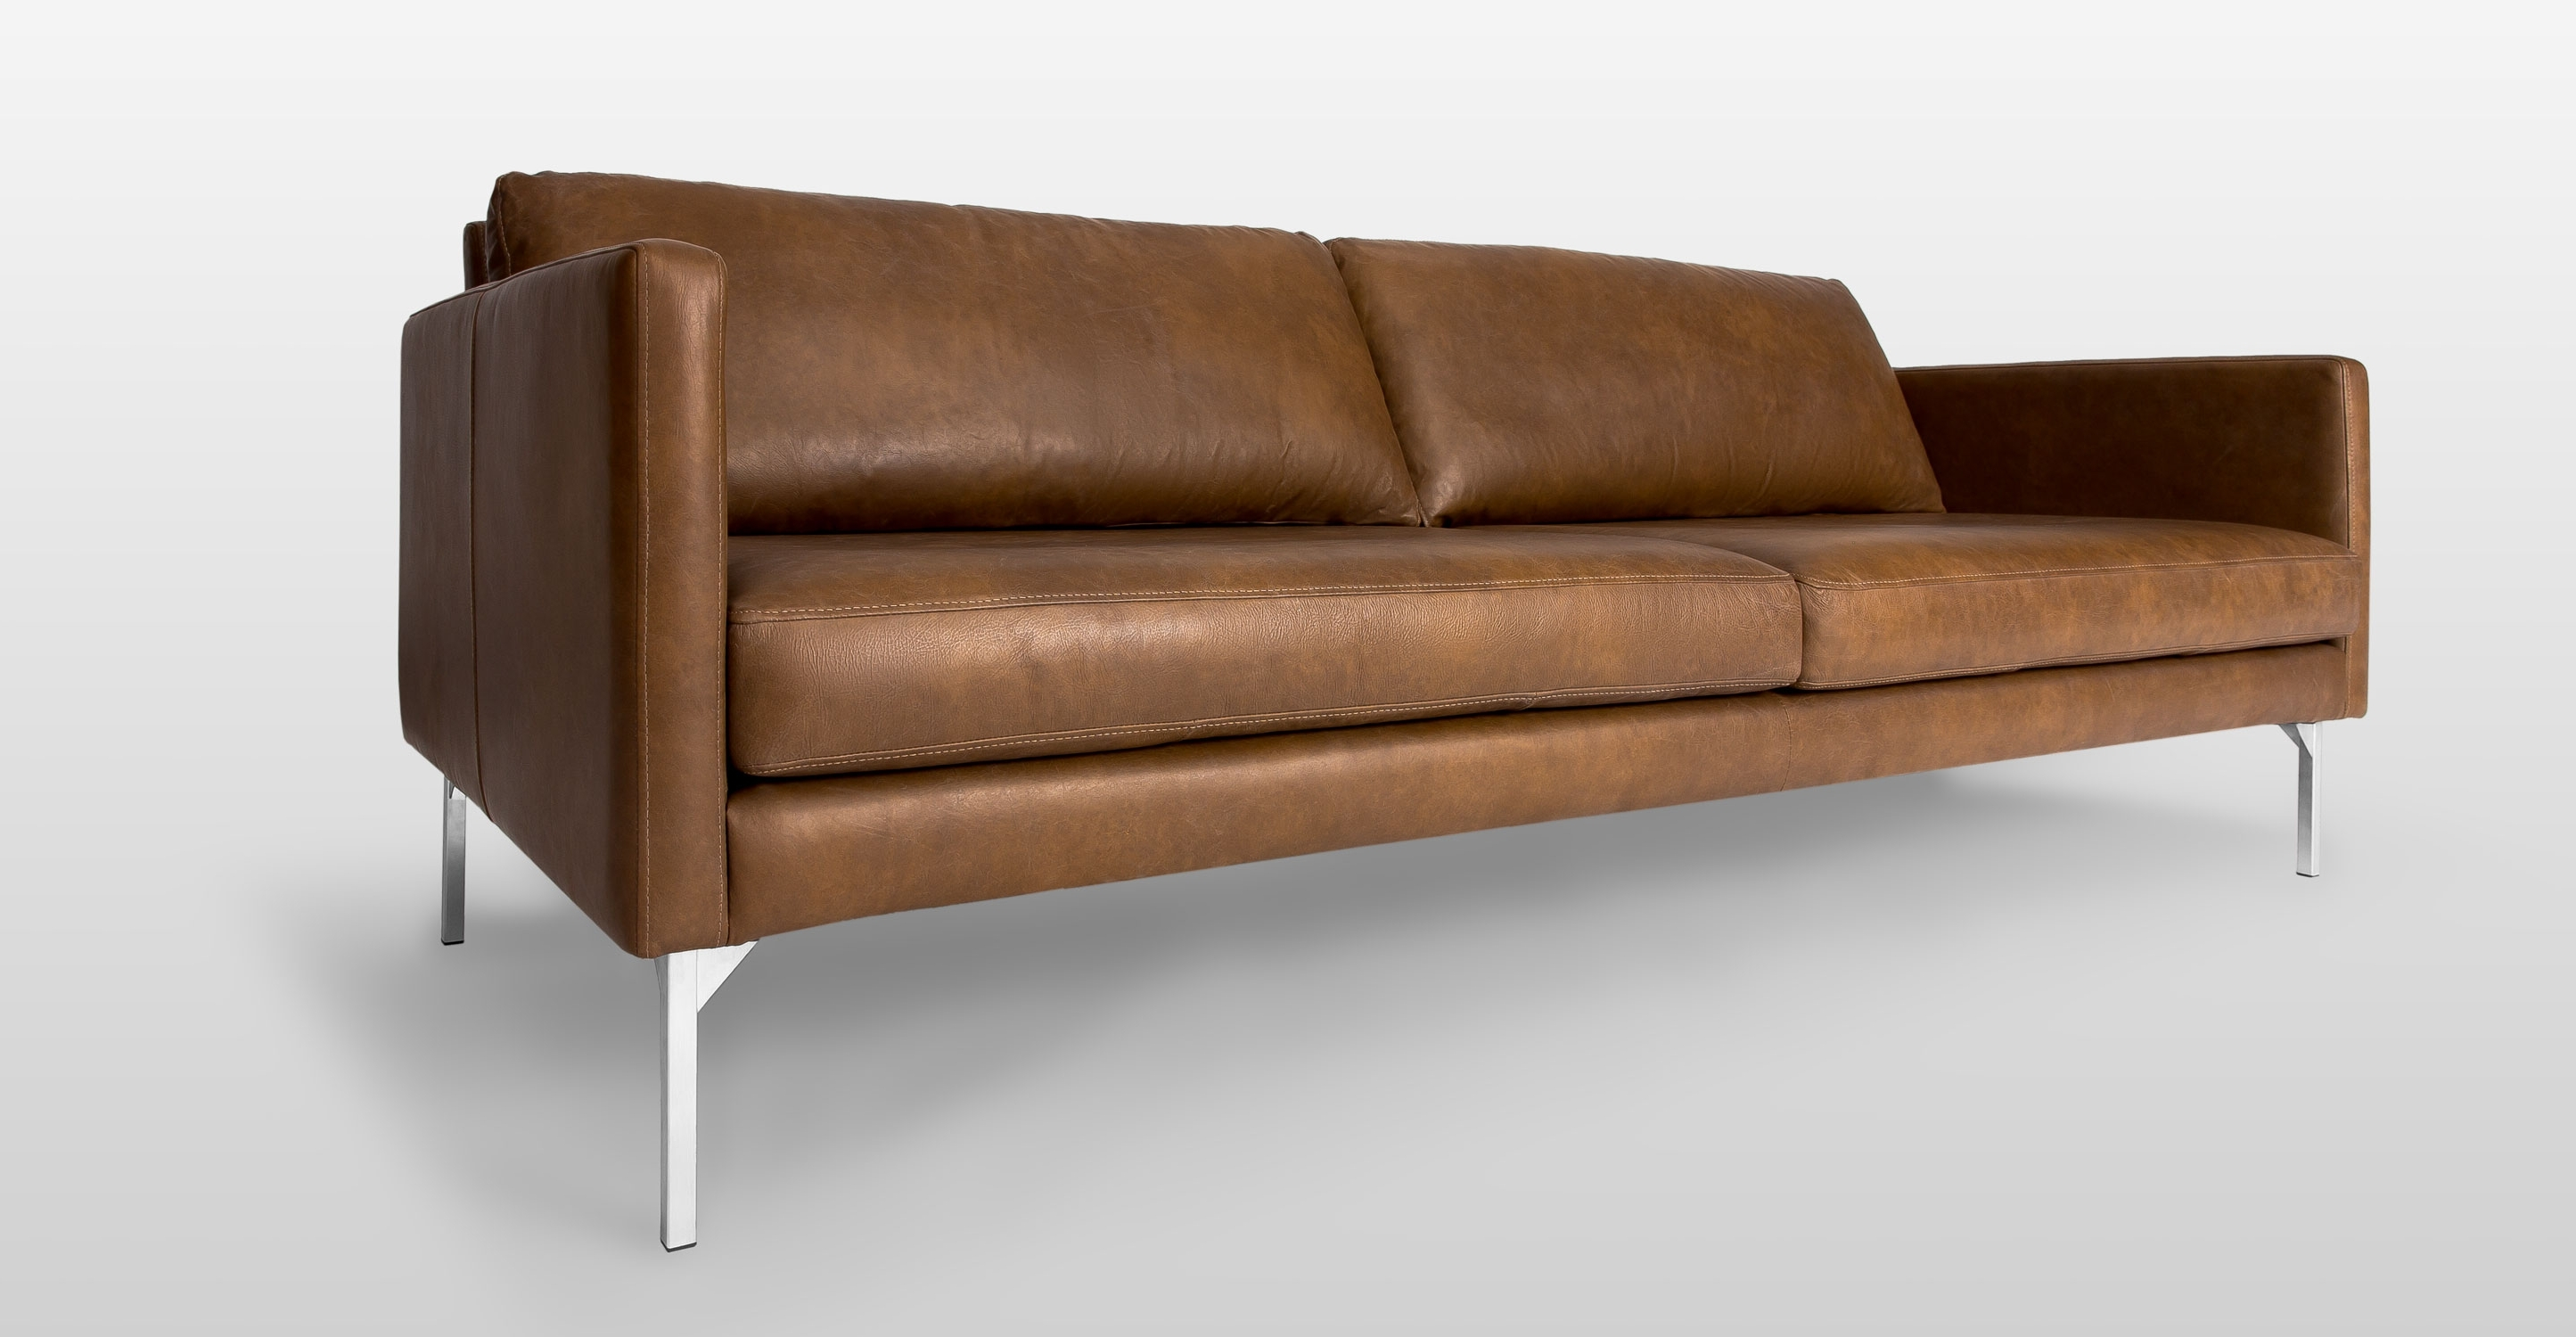 Widely Used Oxford Sofas Throughout Brown Leather Sofa With Metal Legs (View 15 of 15)